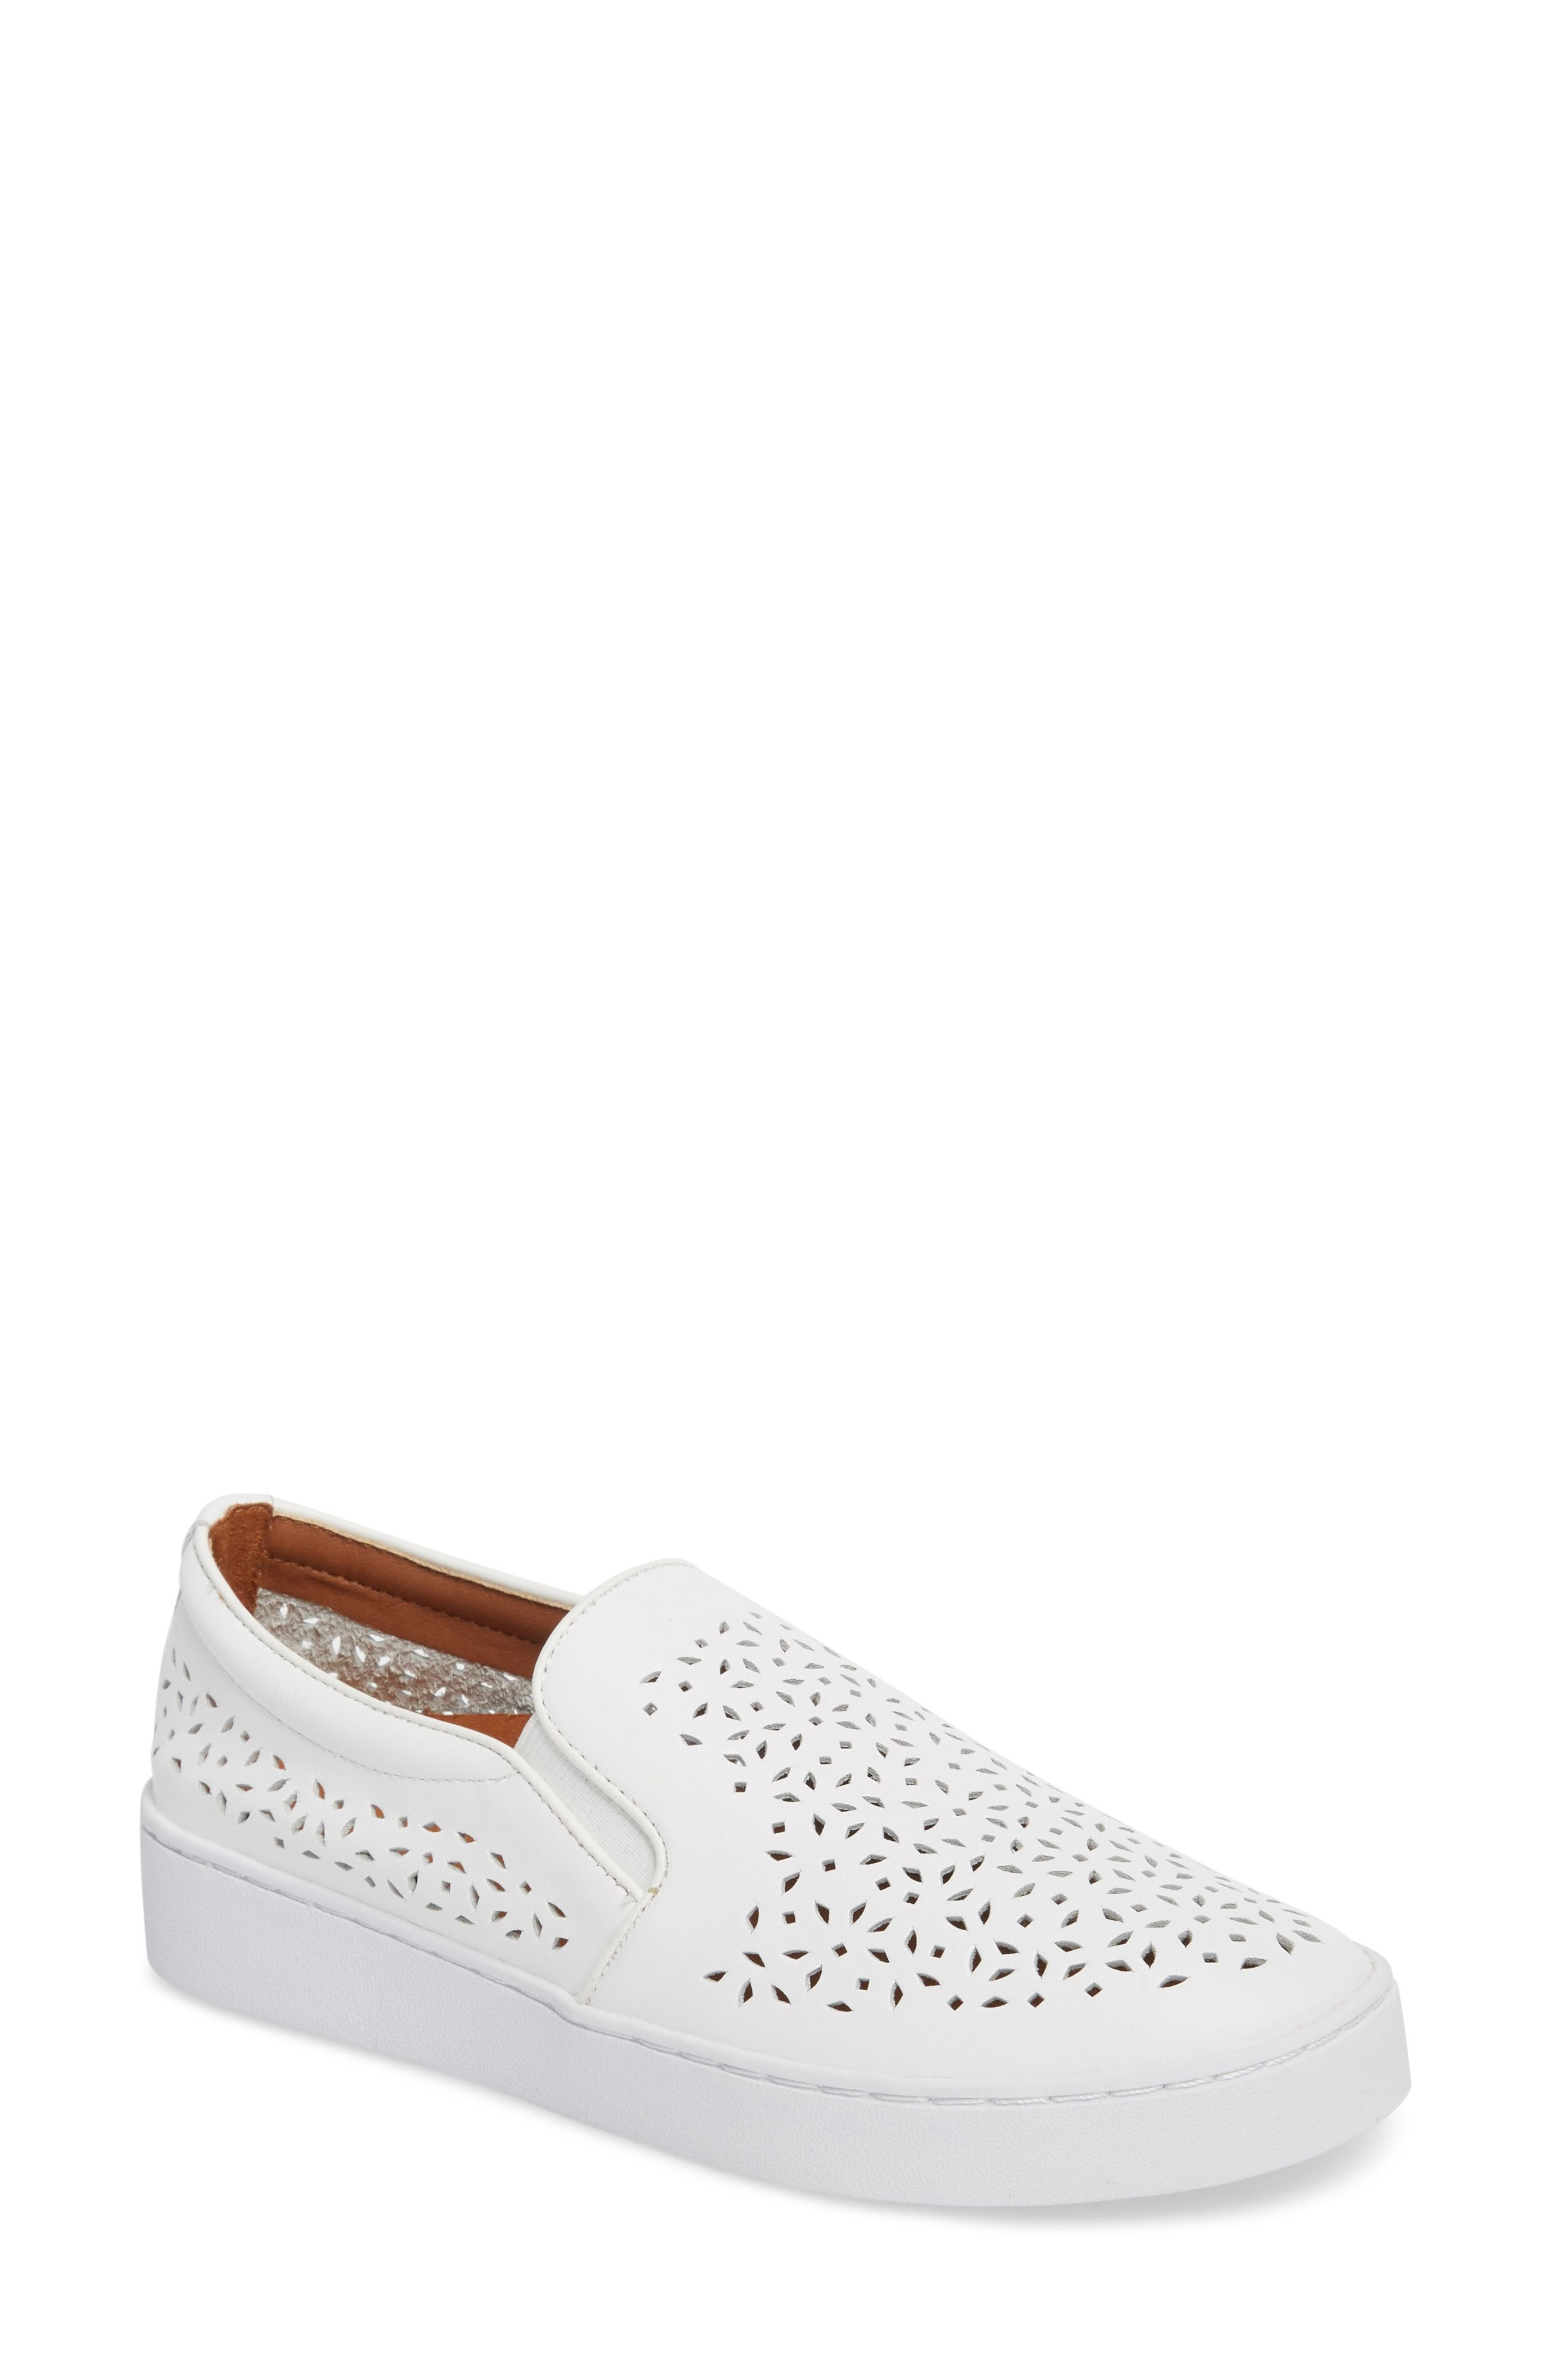 f2b9d6c44 Vionic Shoes Are 40% Off at Nordstrom